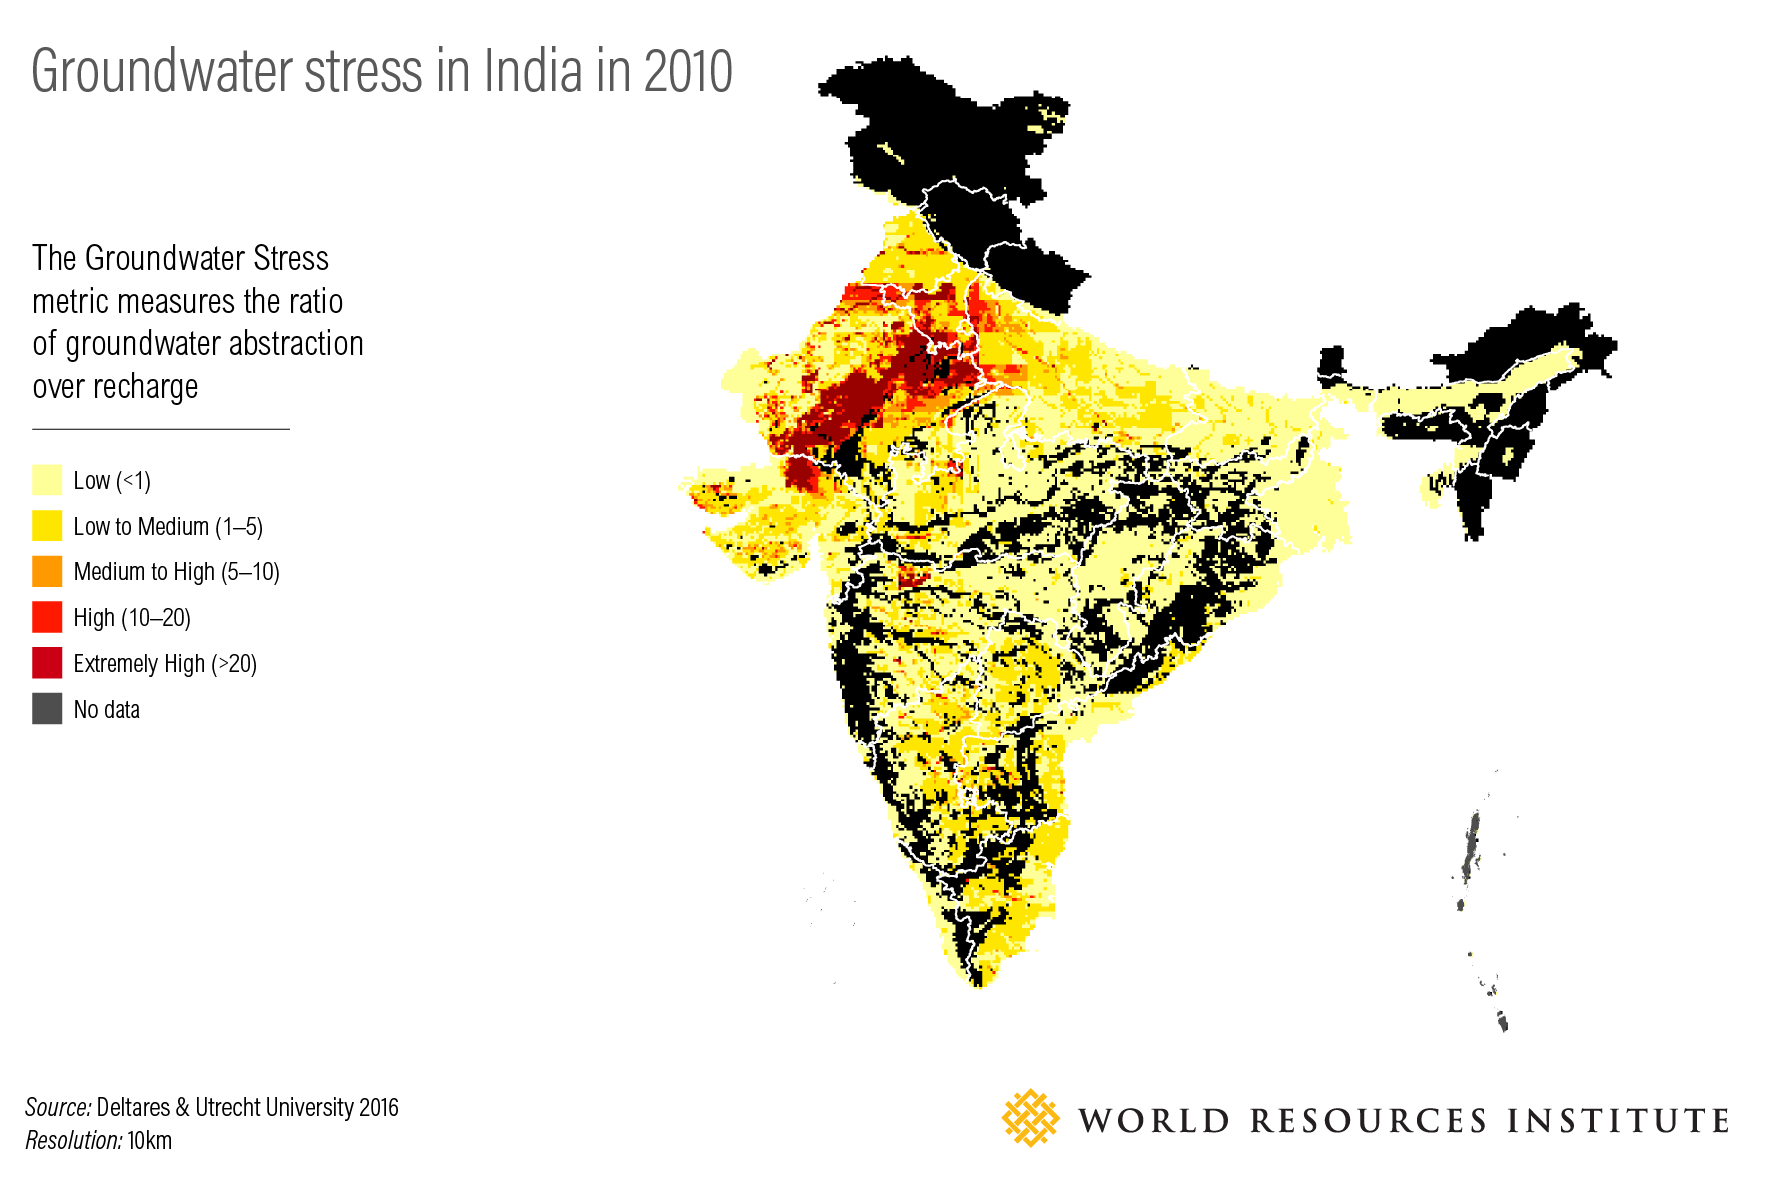 <p>Figure 2: Groundwater stress in India in 2010</p>